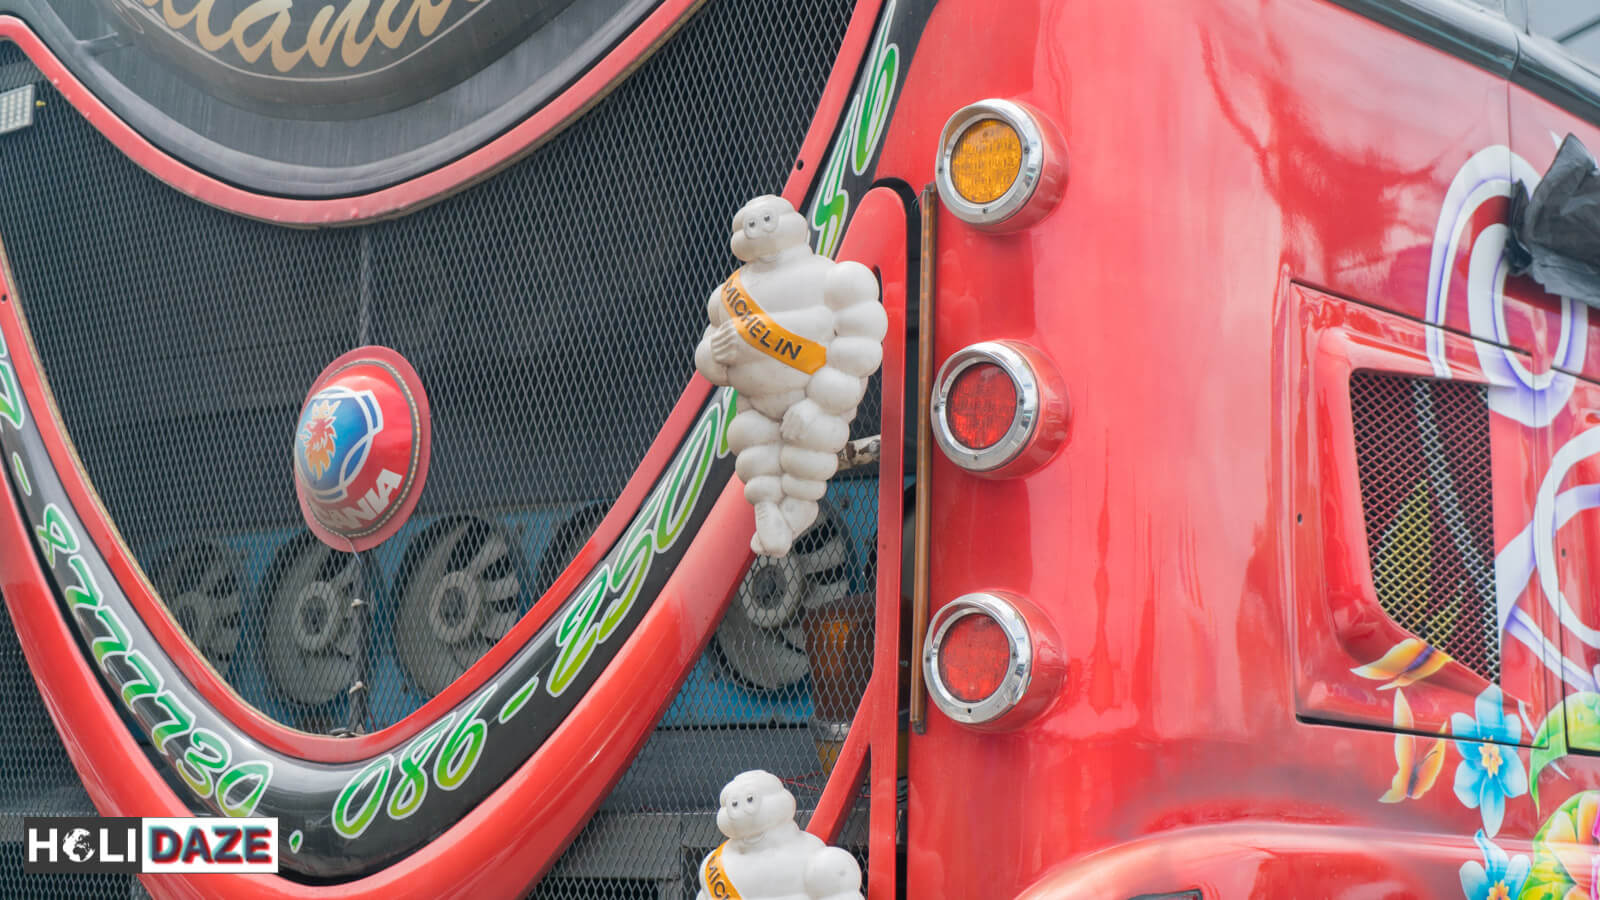 Thai buses love the Michelin man despite the fact they don't even use Michelin tires